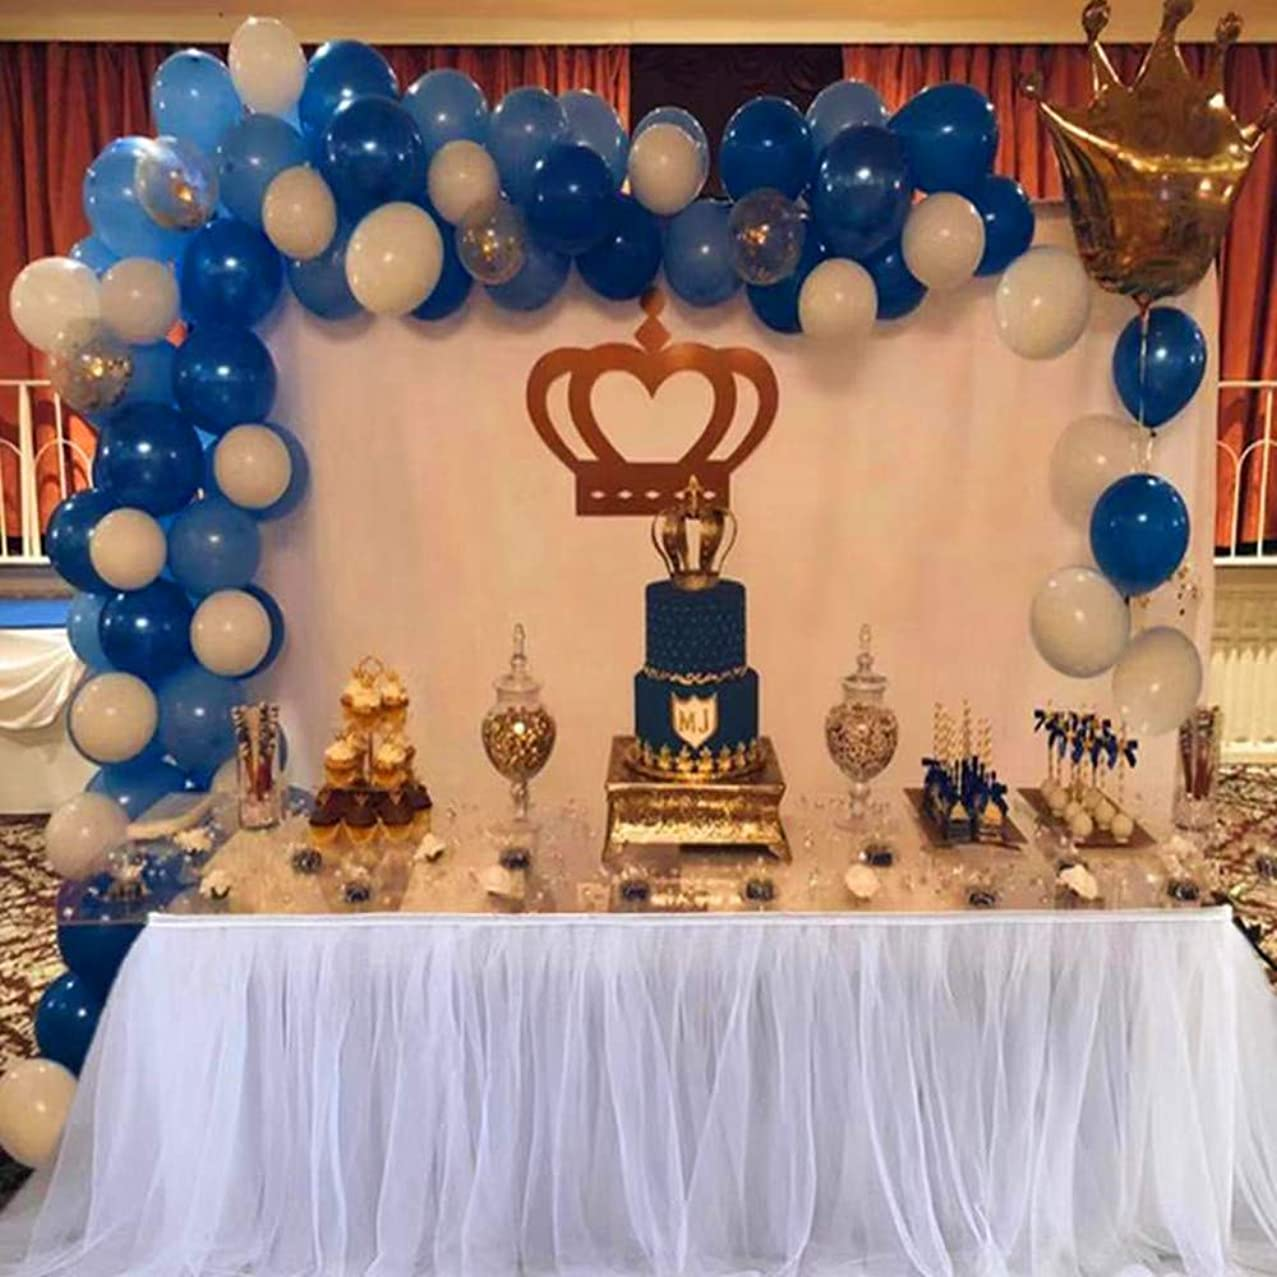 Balloon Arch & Garland Kit | 100 Royal Blue & Light Blue & White Latex Balloons,Gold Confetti Balloons | Balloon Arch & Garland Strip Tool | Baby Shower Birthday Party Decorations